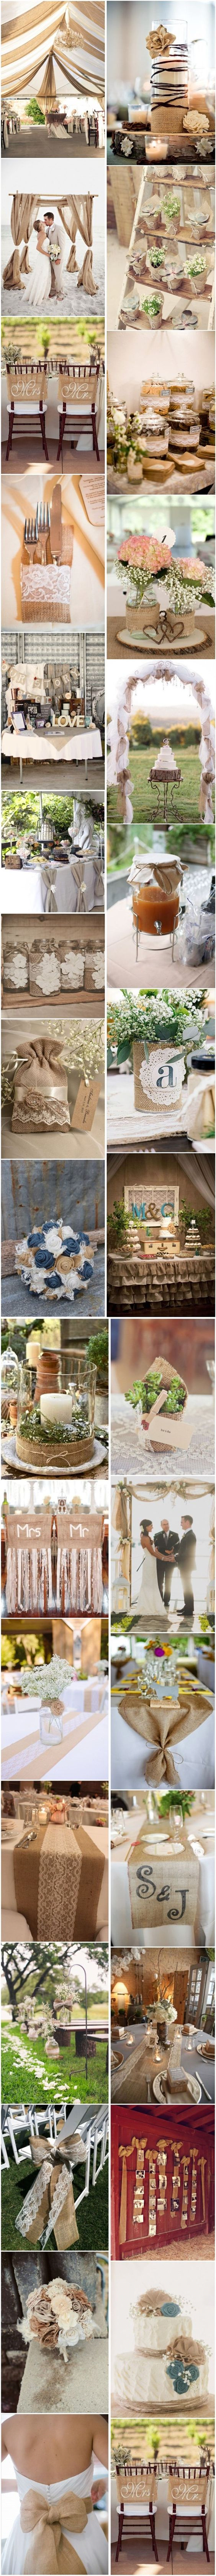 50+ Chic-Rustic Burlap Wedding Ideas: